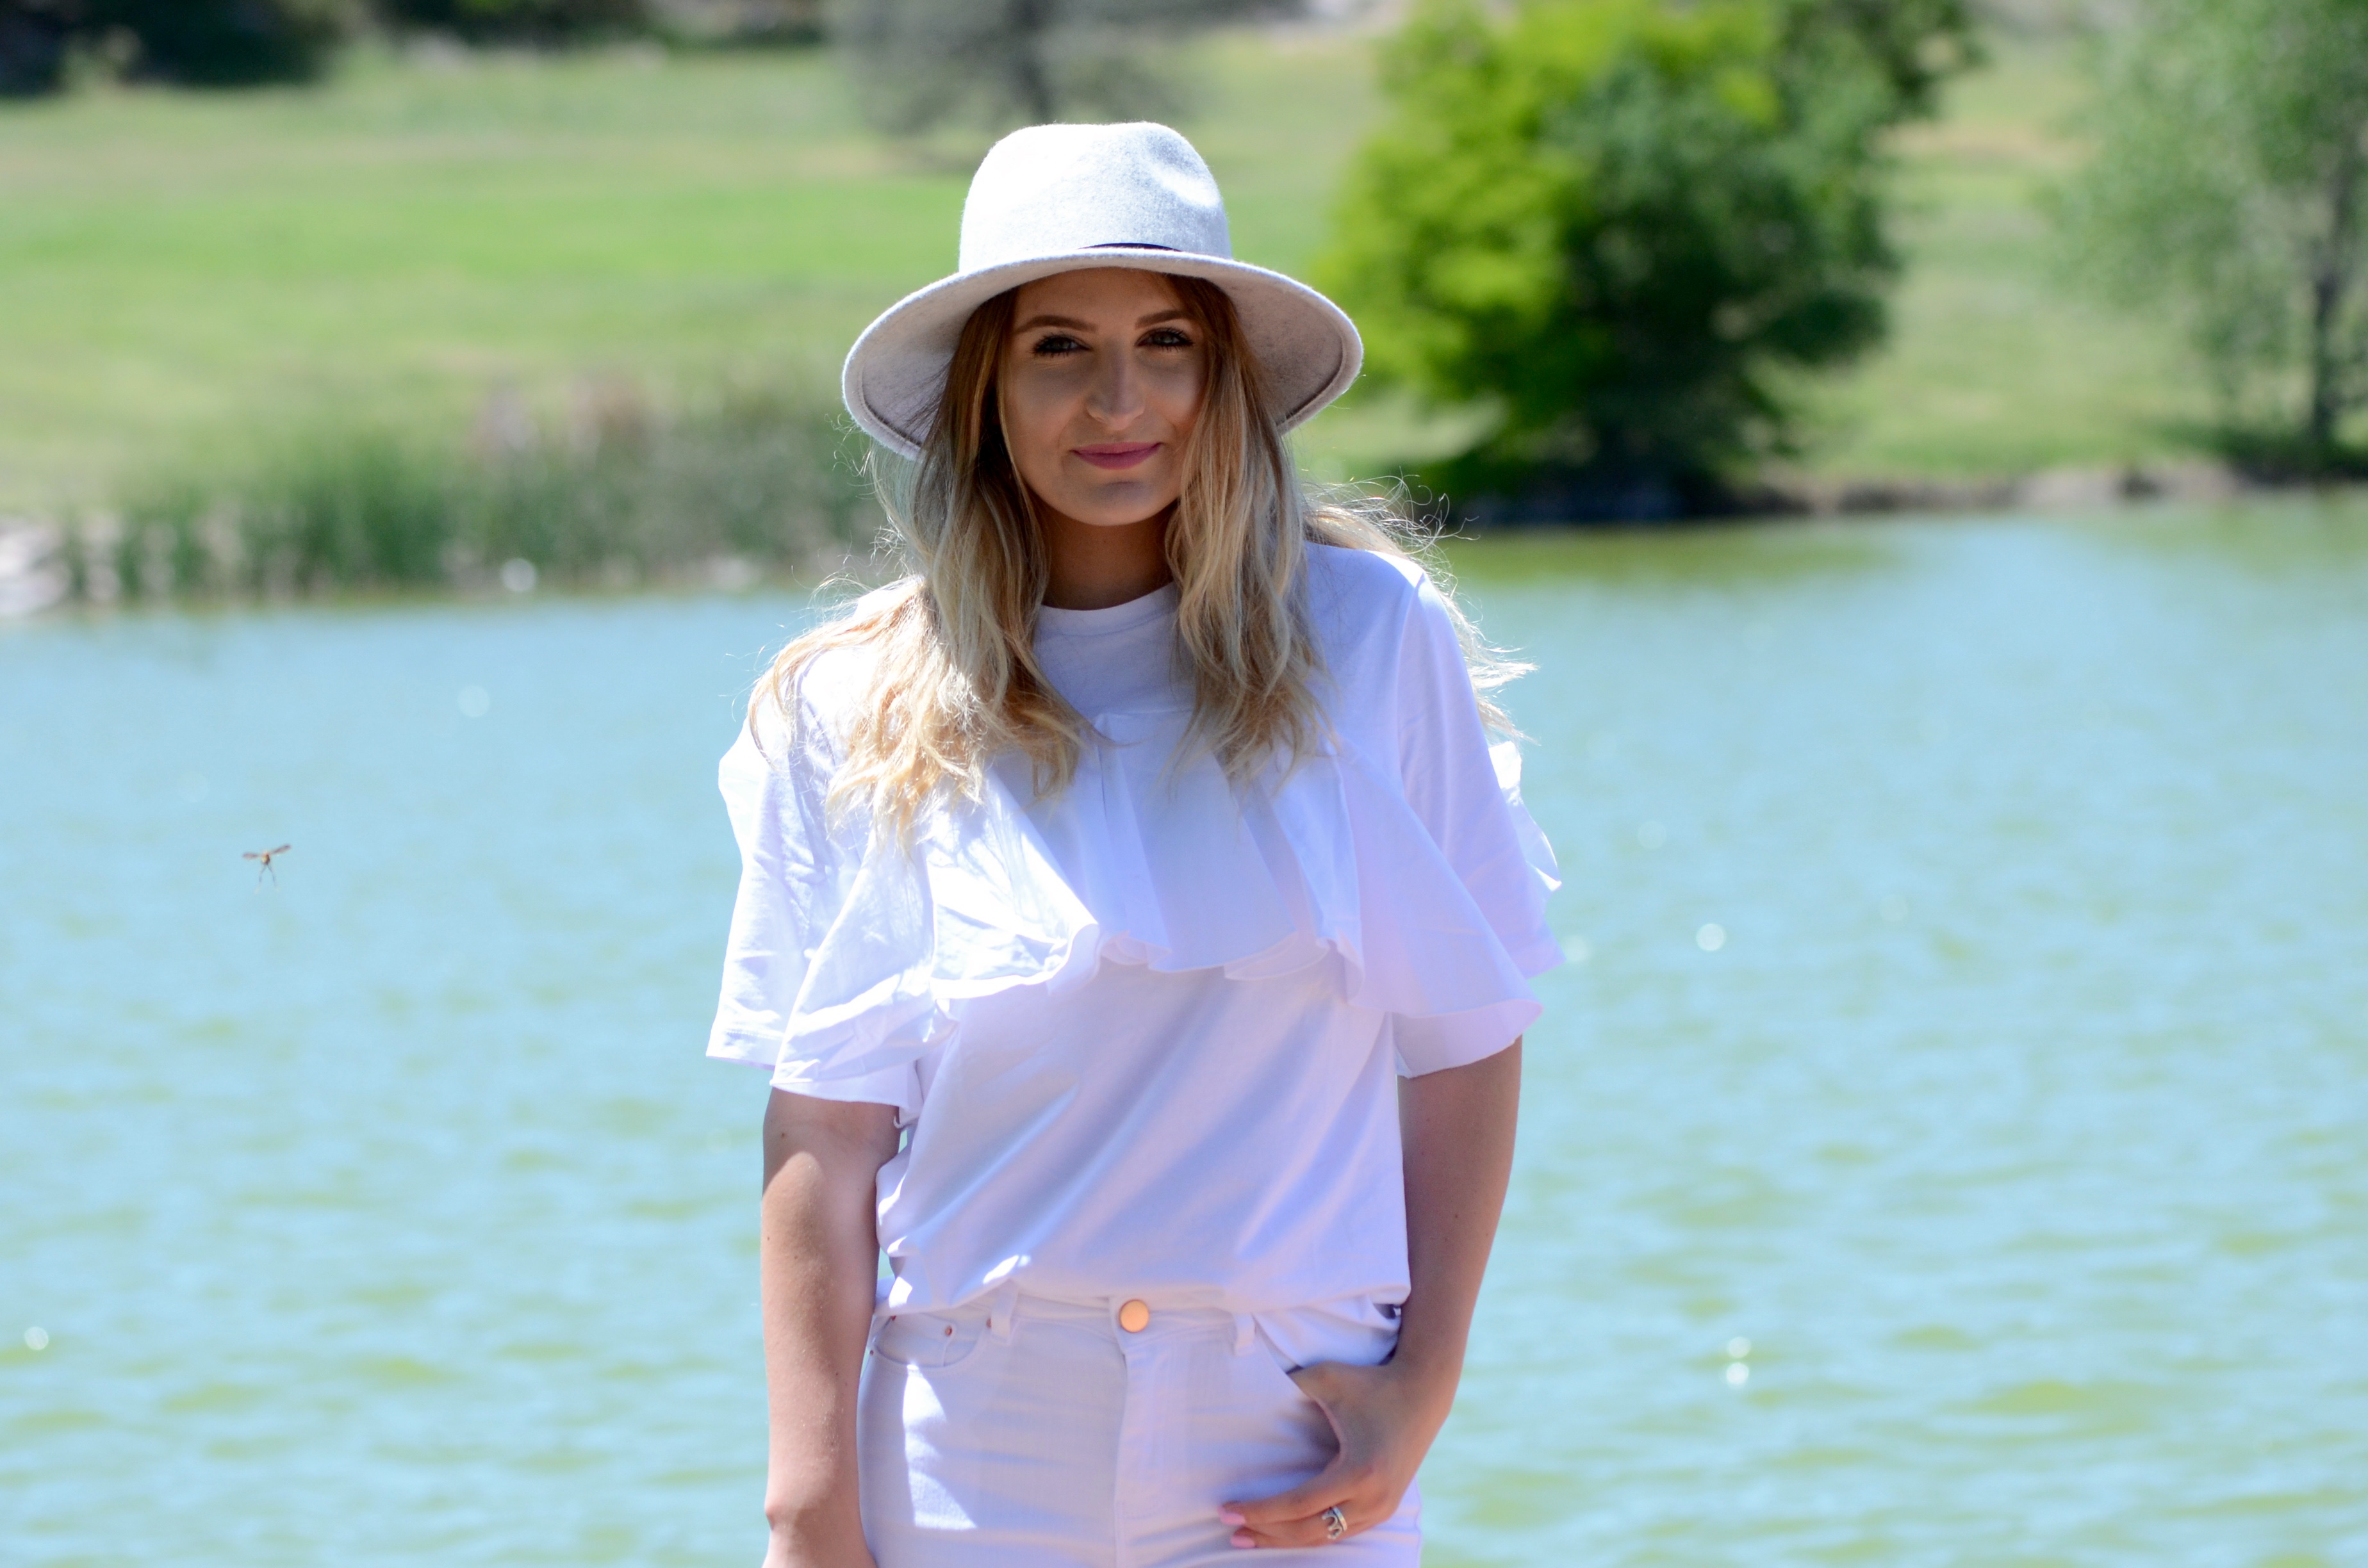 grey felt hat and an all white outfit